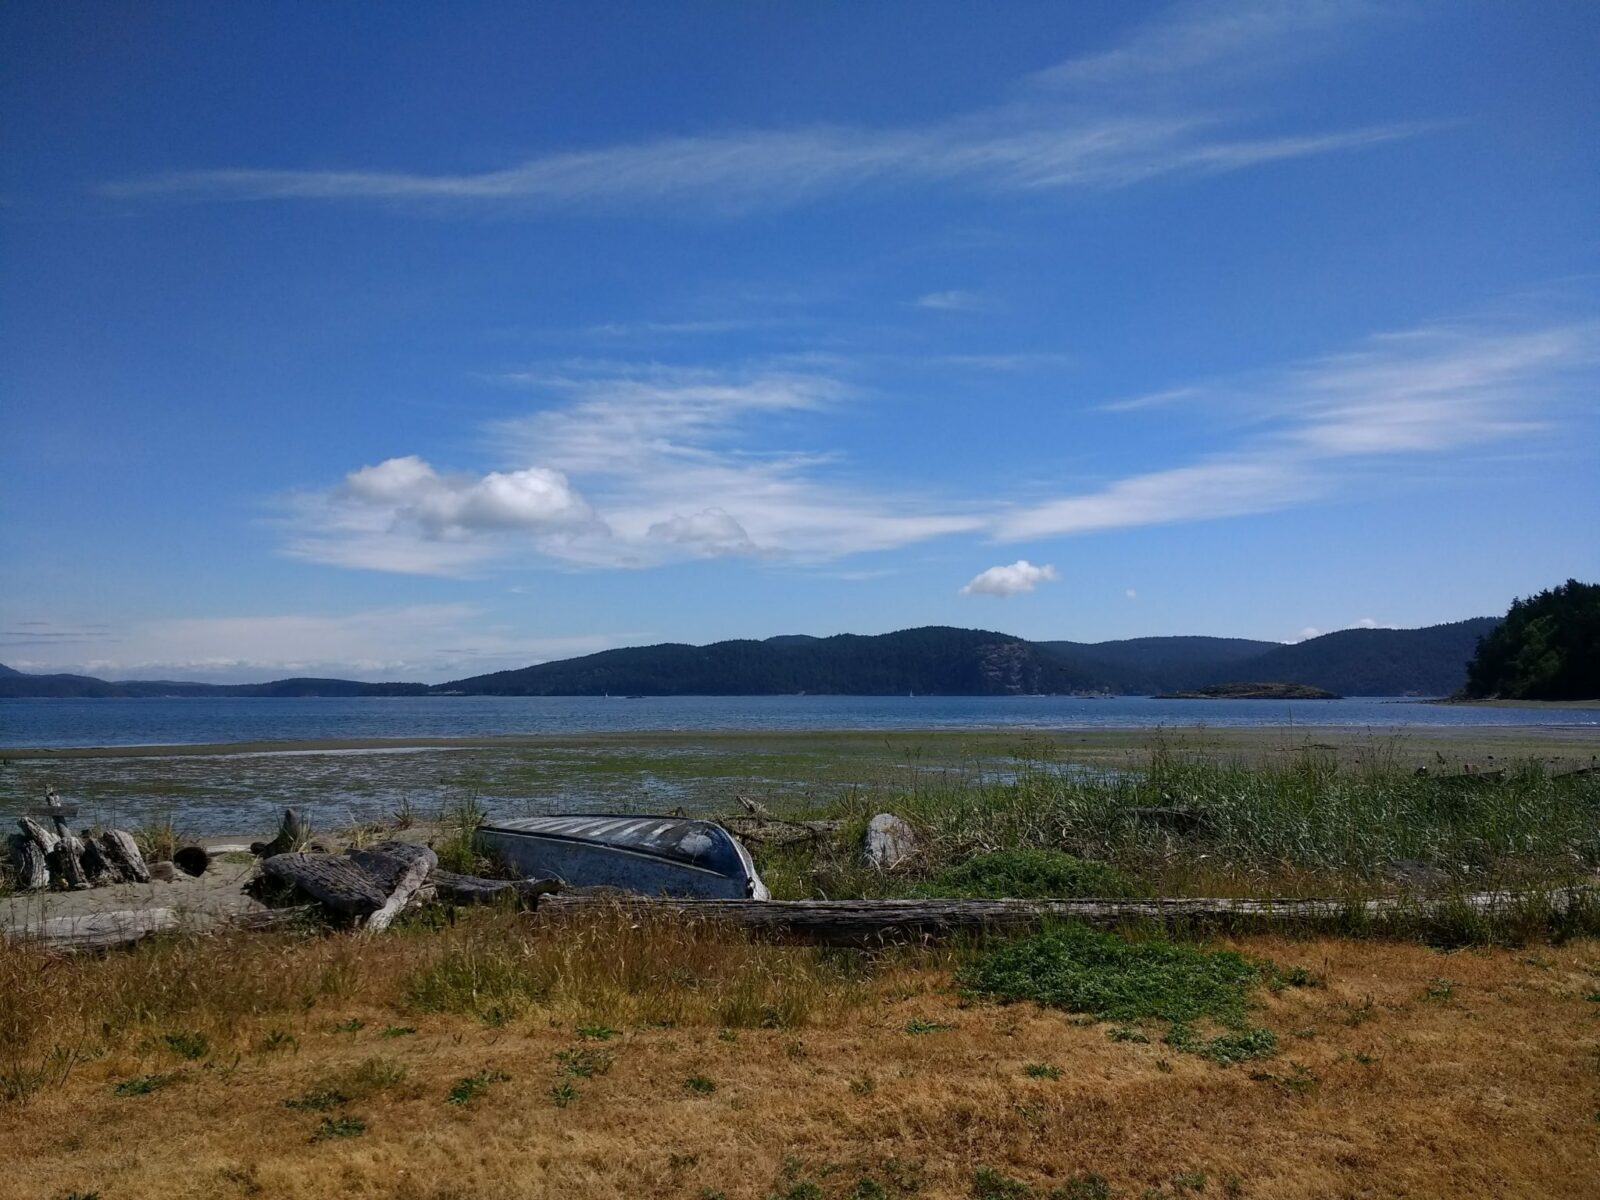 Camping in the San Juan Islands at Spencer Spit State Park. There is a grassy spit in the foreground wtih a canoe, tideflats and water behind. Forested islands are in the background on a sunny day